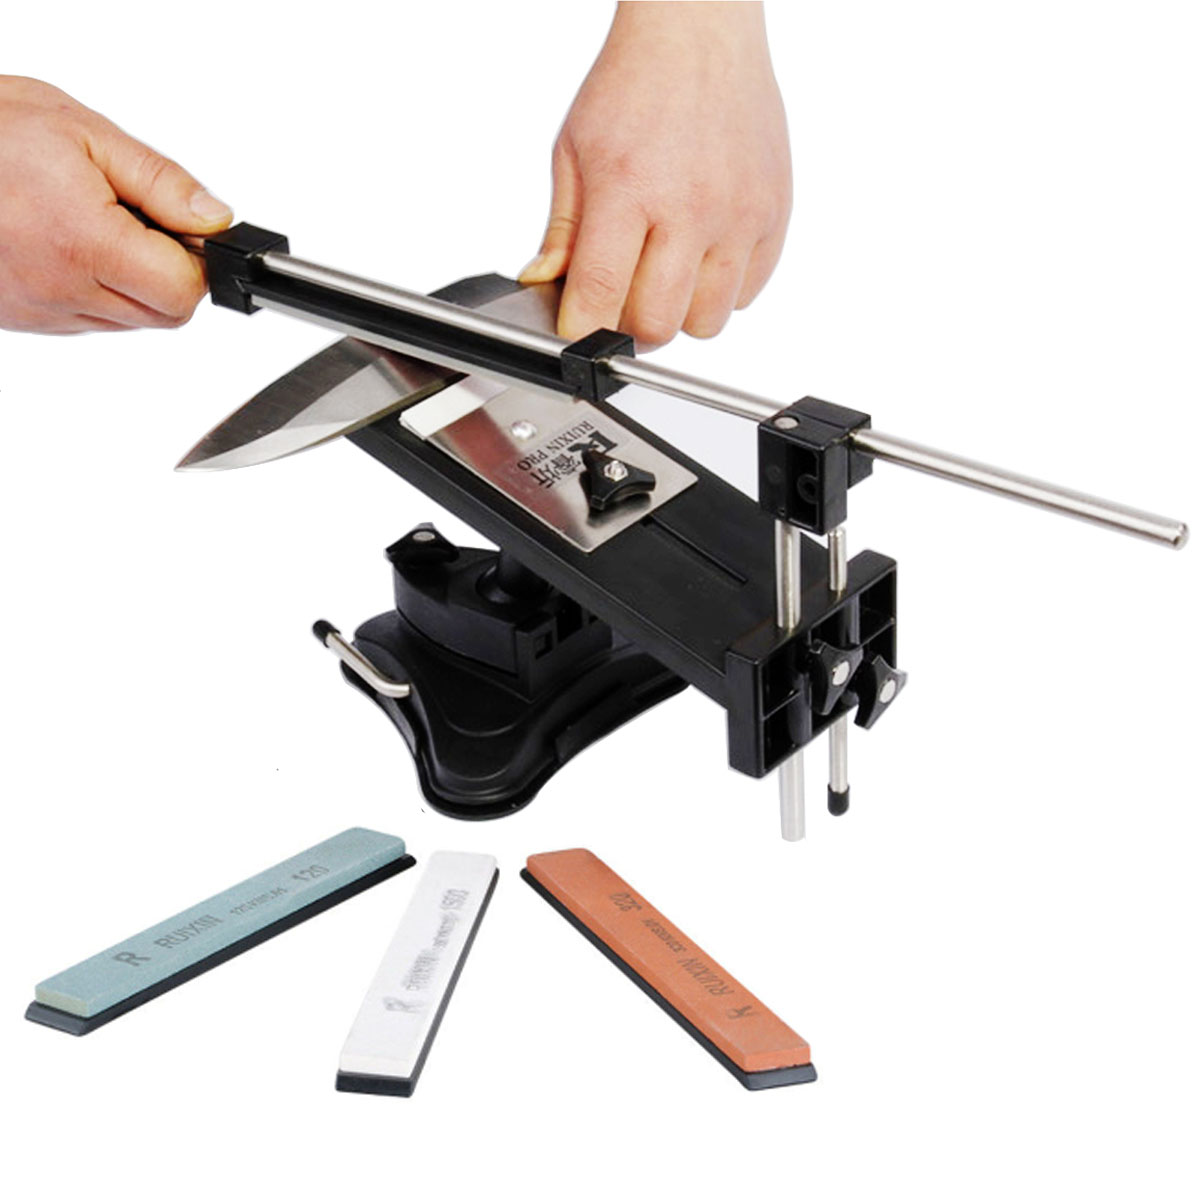 Fixed-angle Knife Sharpening Stone Sharpener Professional Kitchen Knife Sharpener Kits System 4 Sharpening Stones